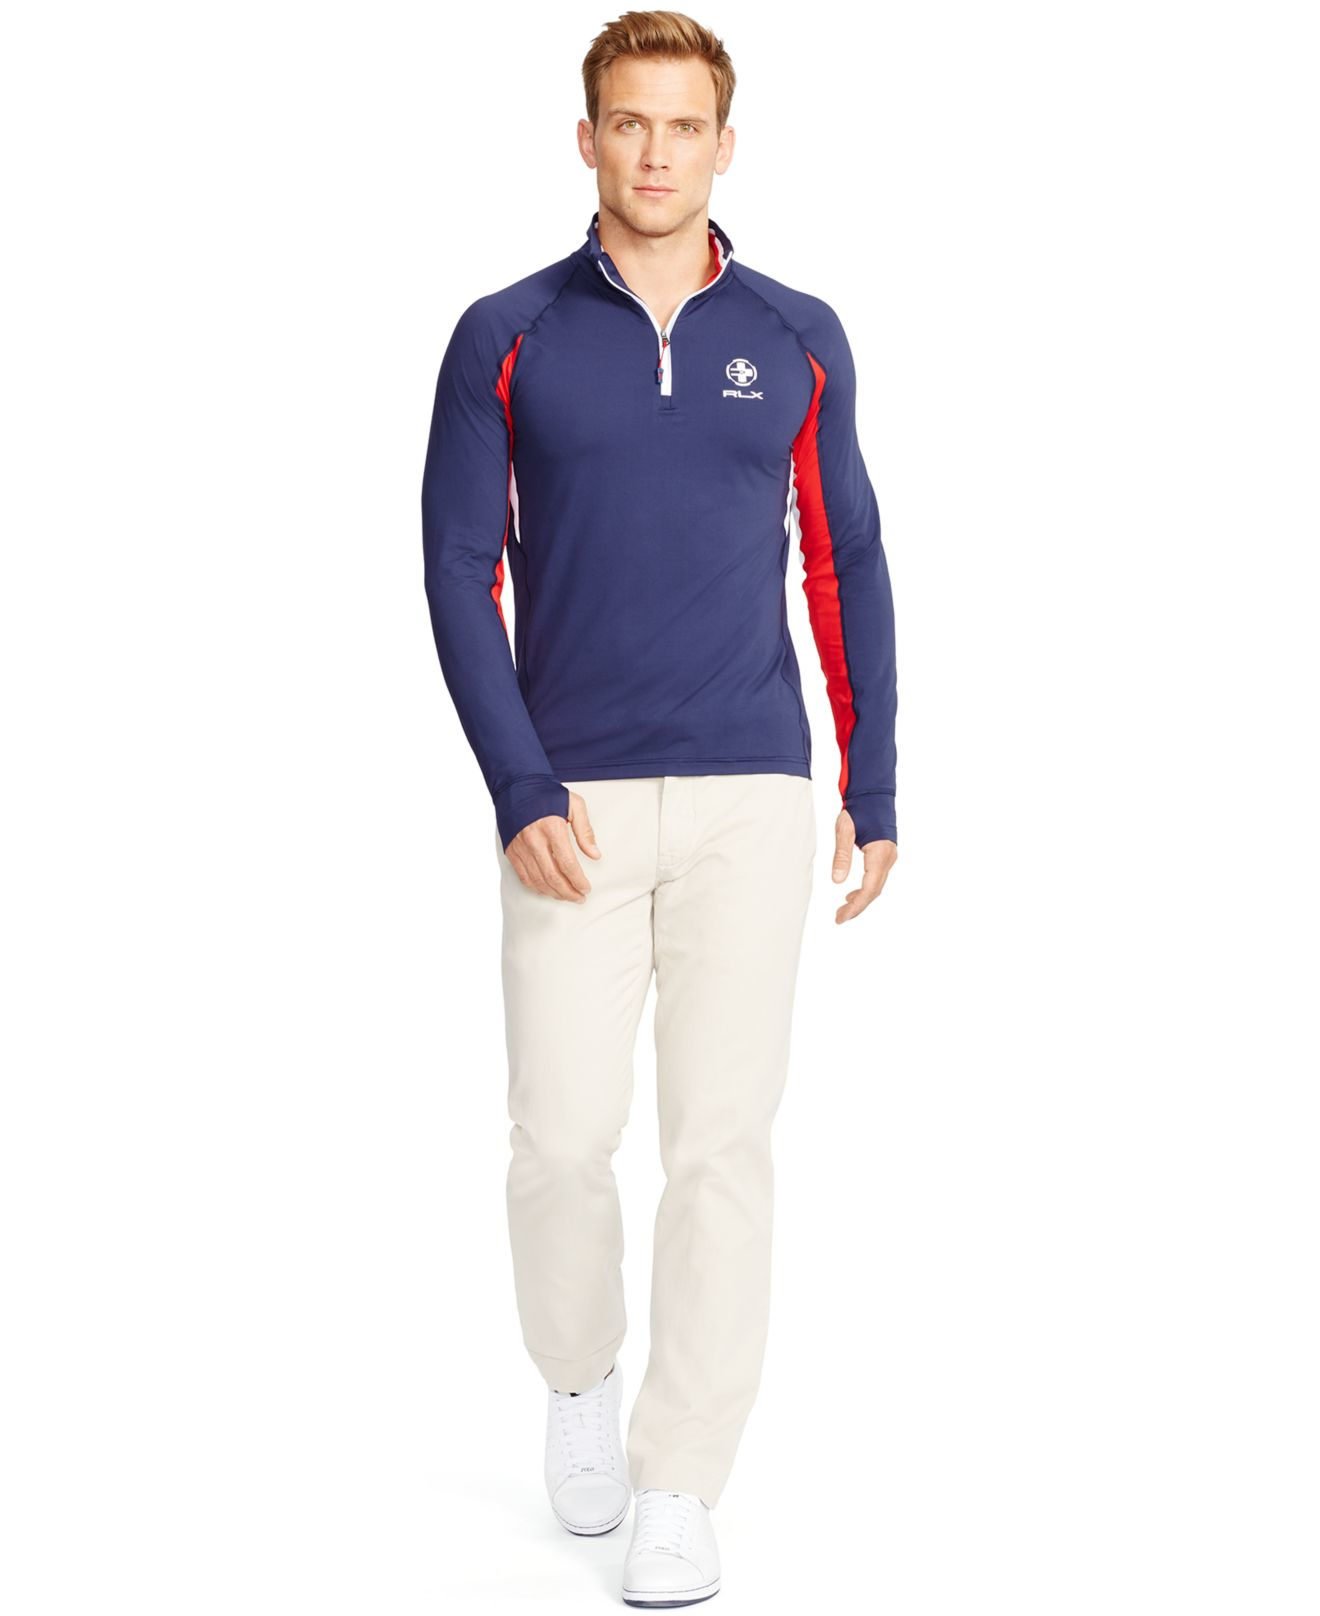 lyst polo ralph lauren rlx performance jersey pullover. Black Bedroom Furniture Sets. Home Design Ideas